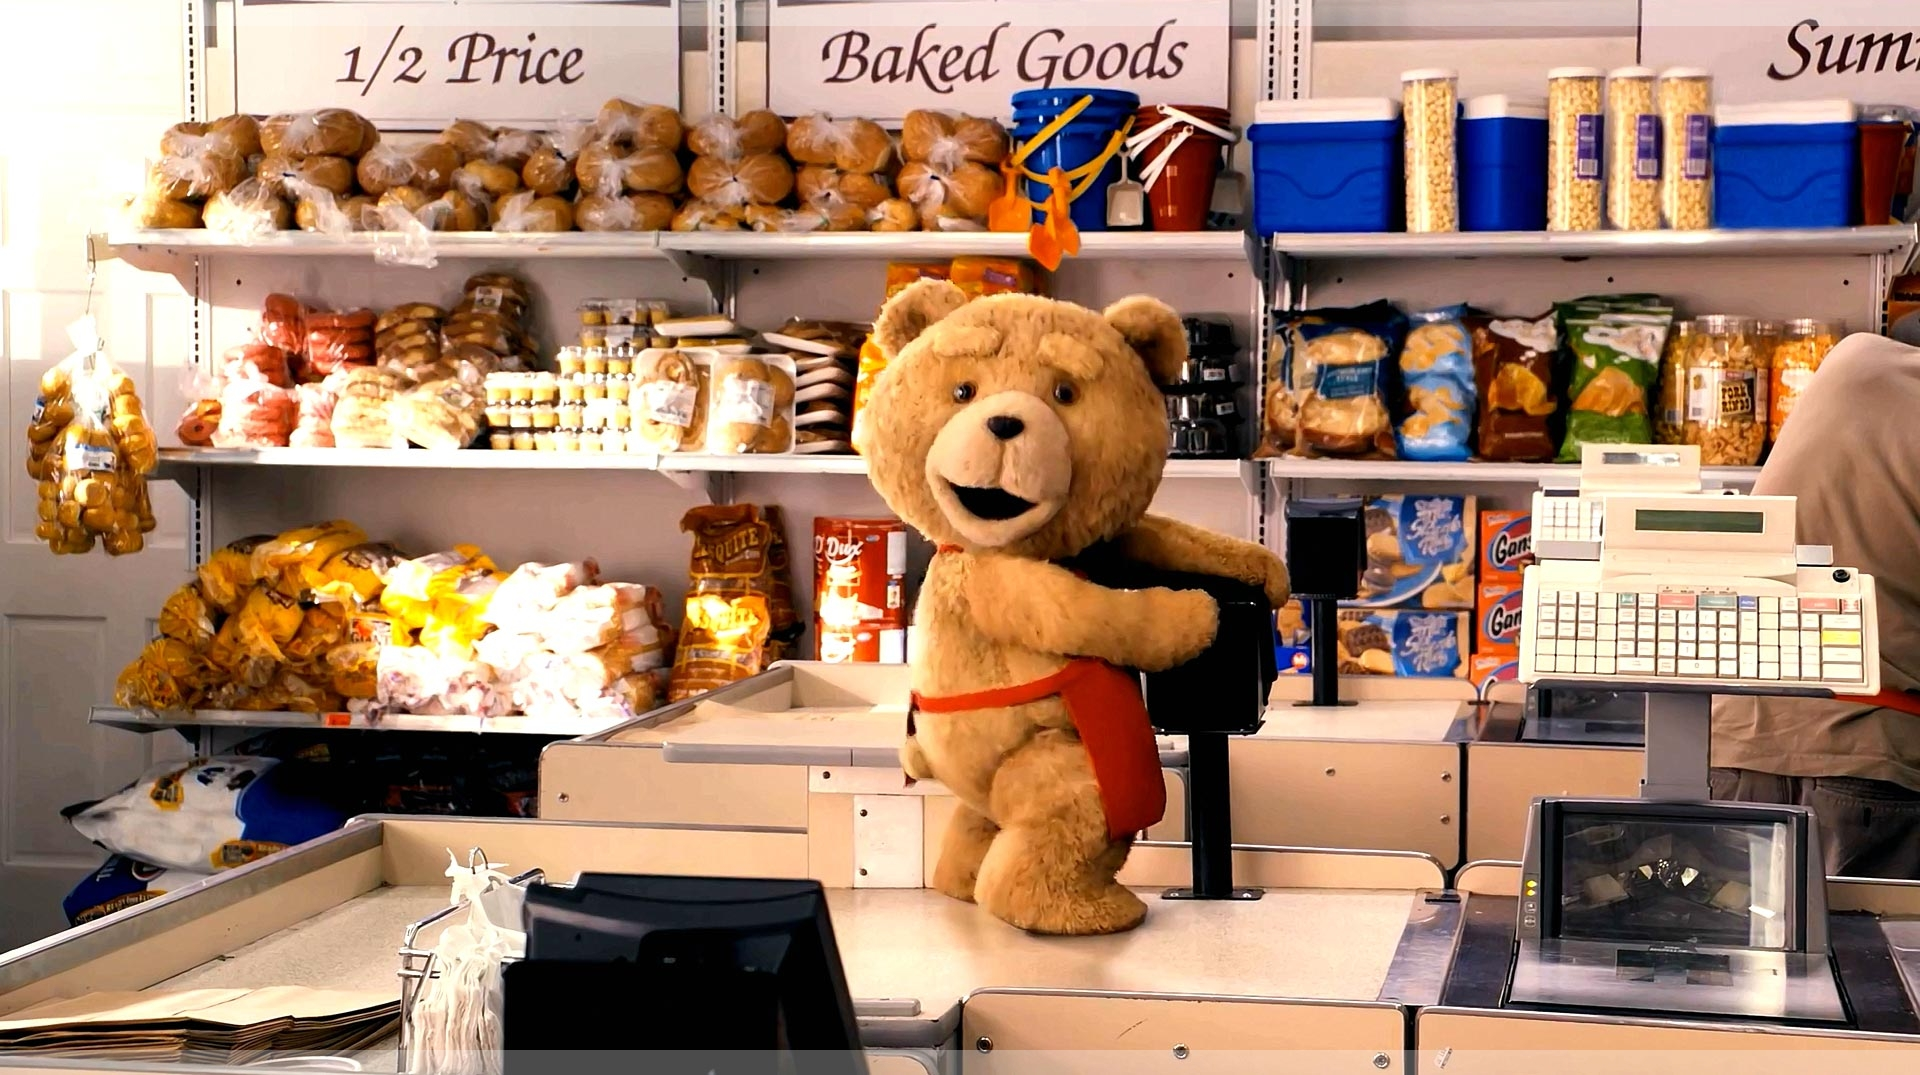 ted-hd-wallpaper.jpg